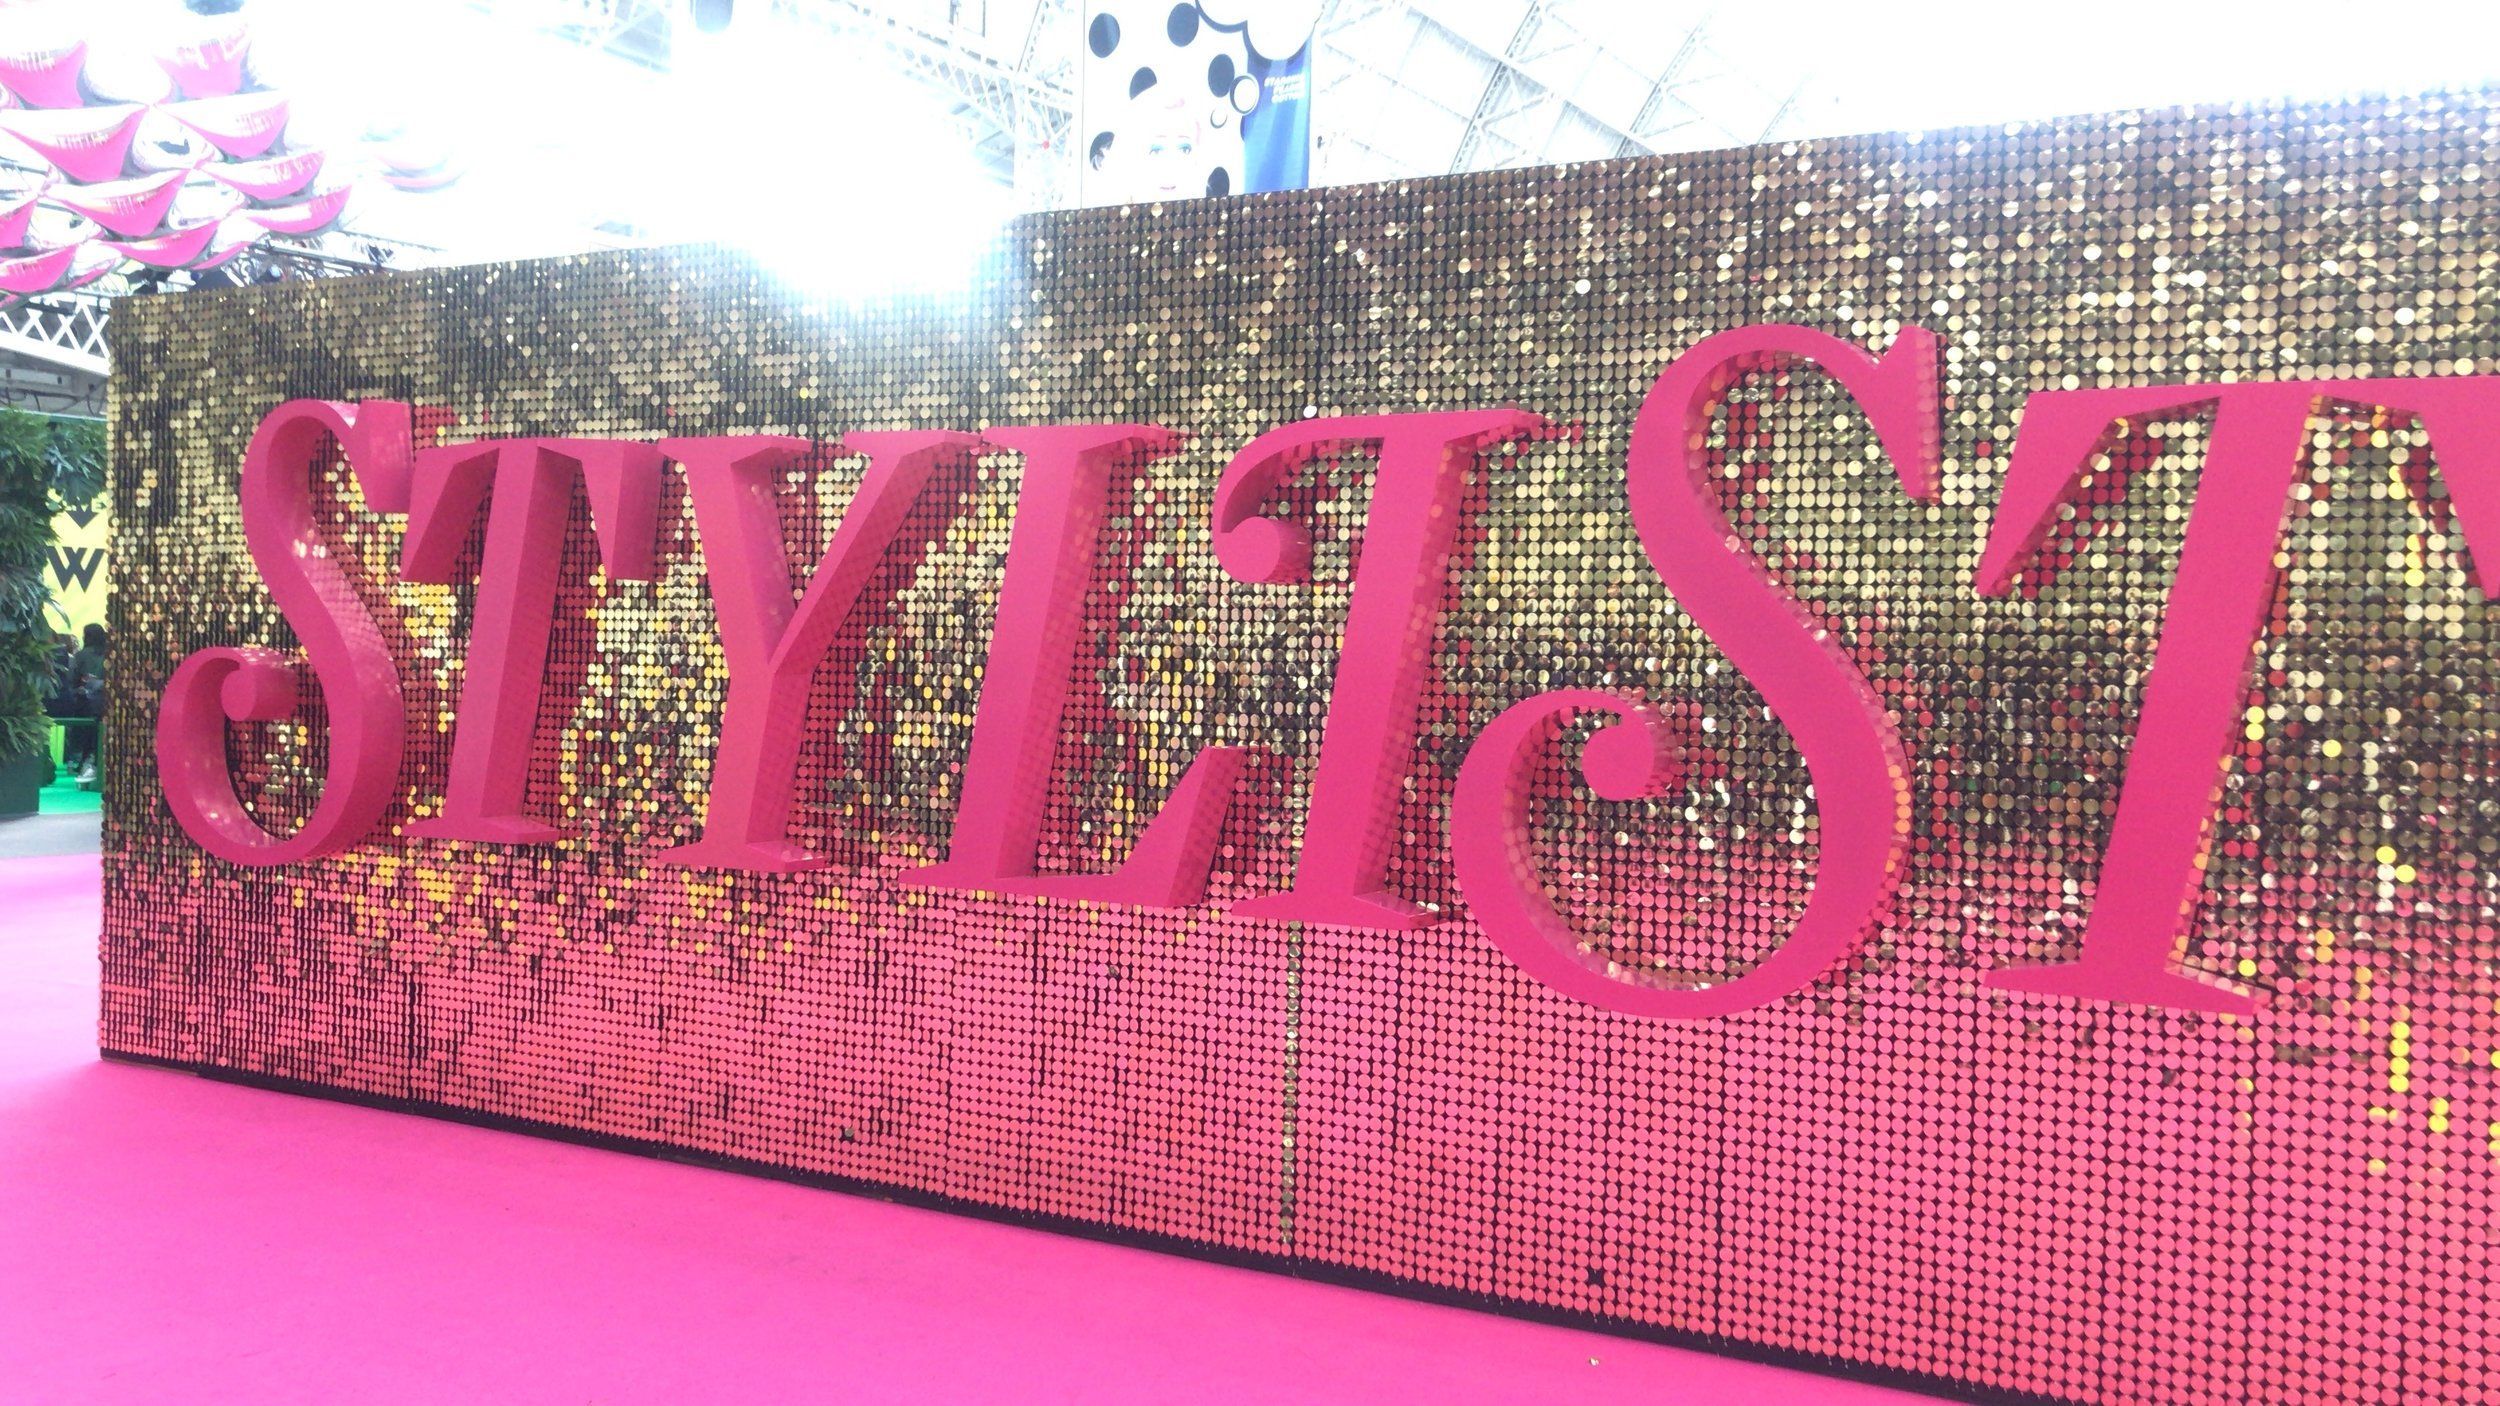 Pure glitz at the entrance to Stylist Live. Photo opportunities everywhere!